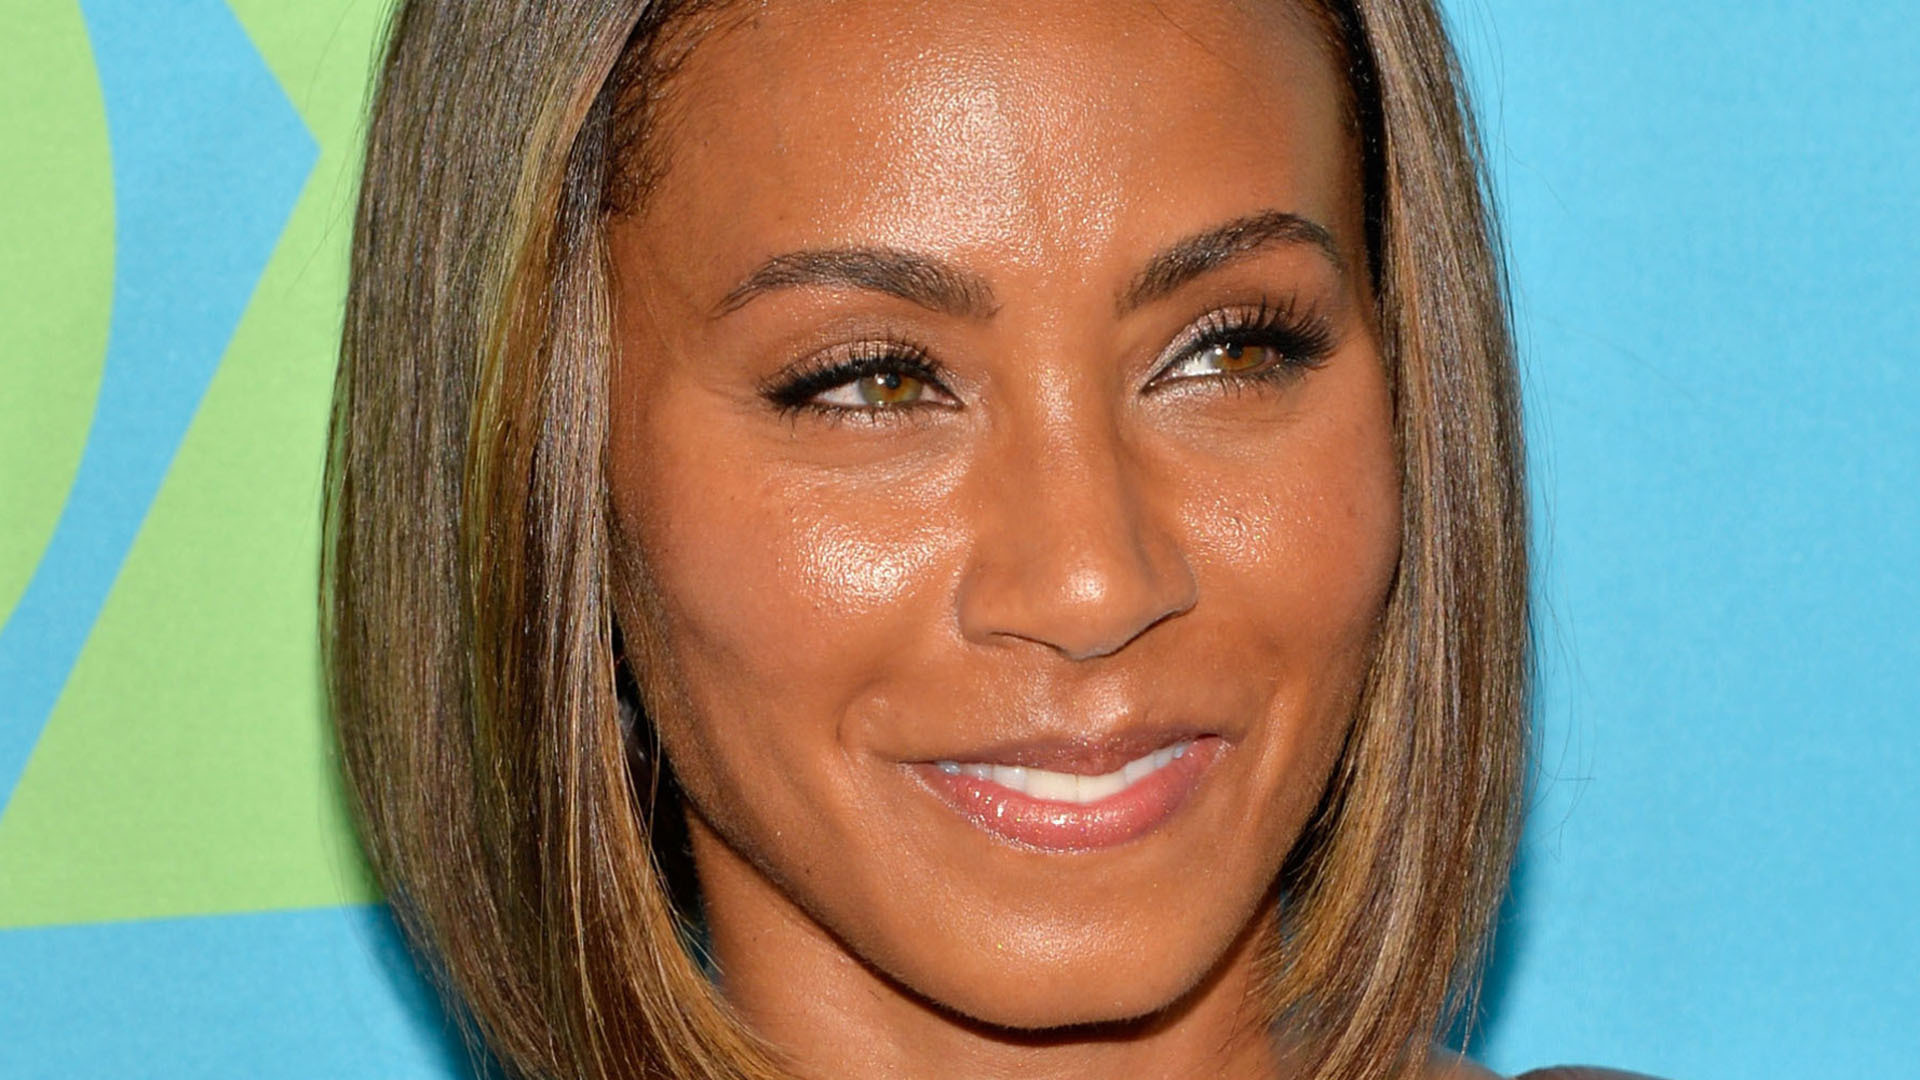 Jada Pinkett Smith Wallpapers Hq